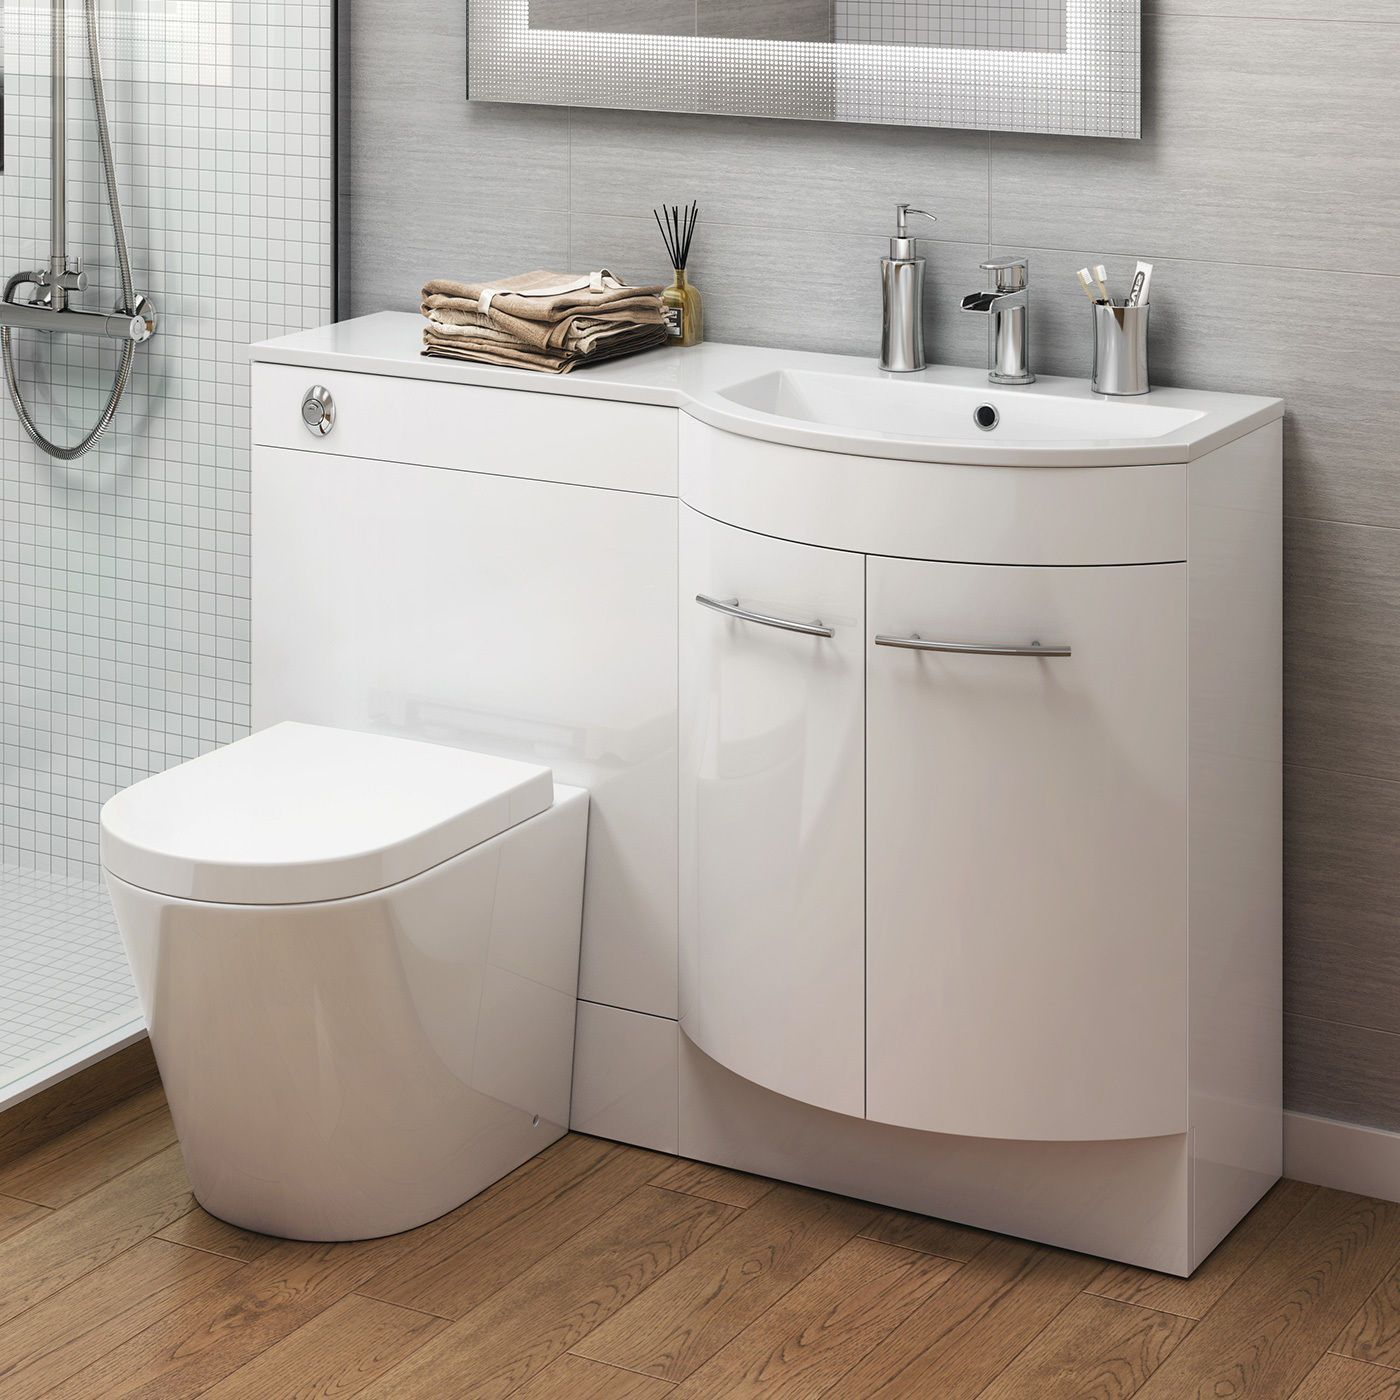 Our white gloss bathroom storage units are ideal for family ...